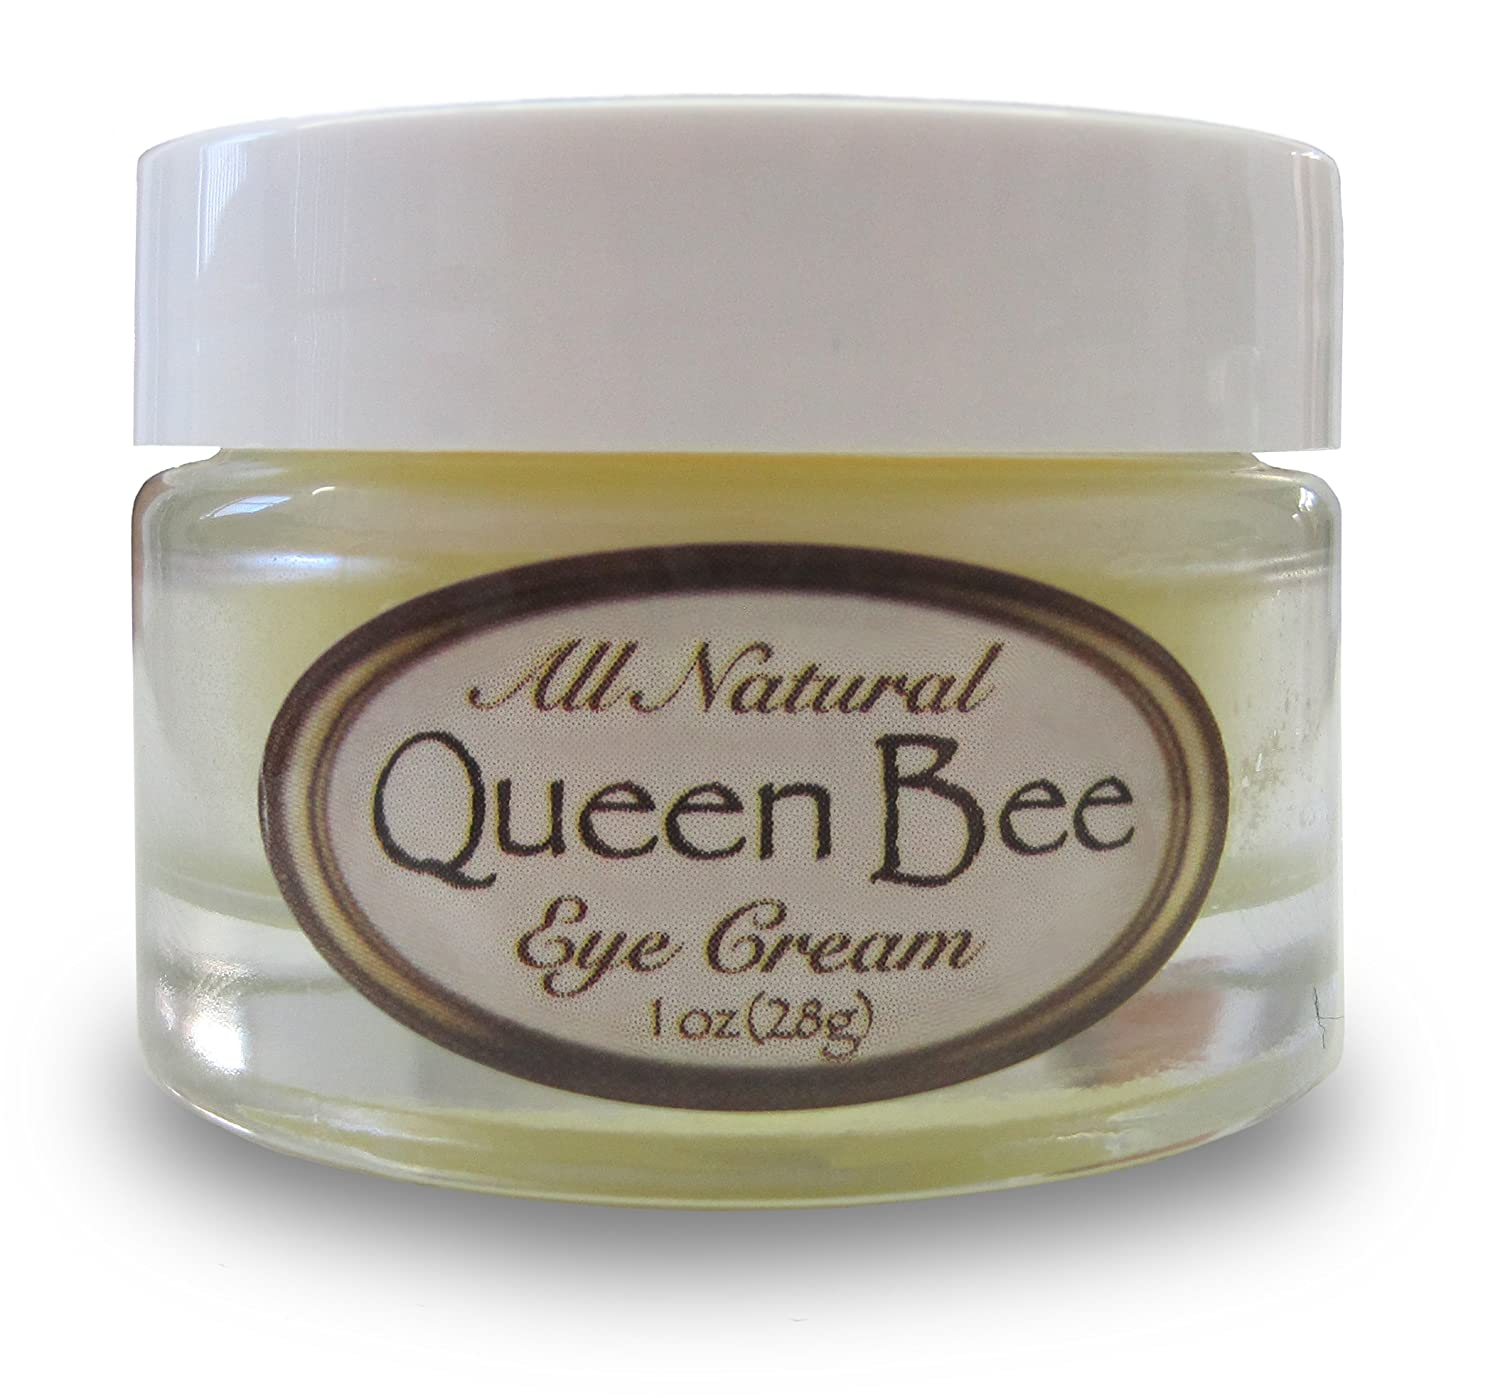 Queen Bee 100% All-Natural, Organic Under Eye Cream - Removes Dark Circles, Facial Lines and Wrinkles Naturally - 1oz (30ml)